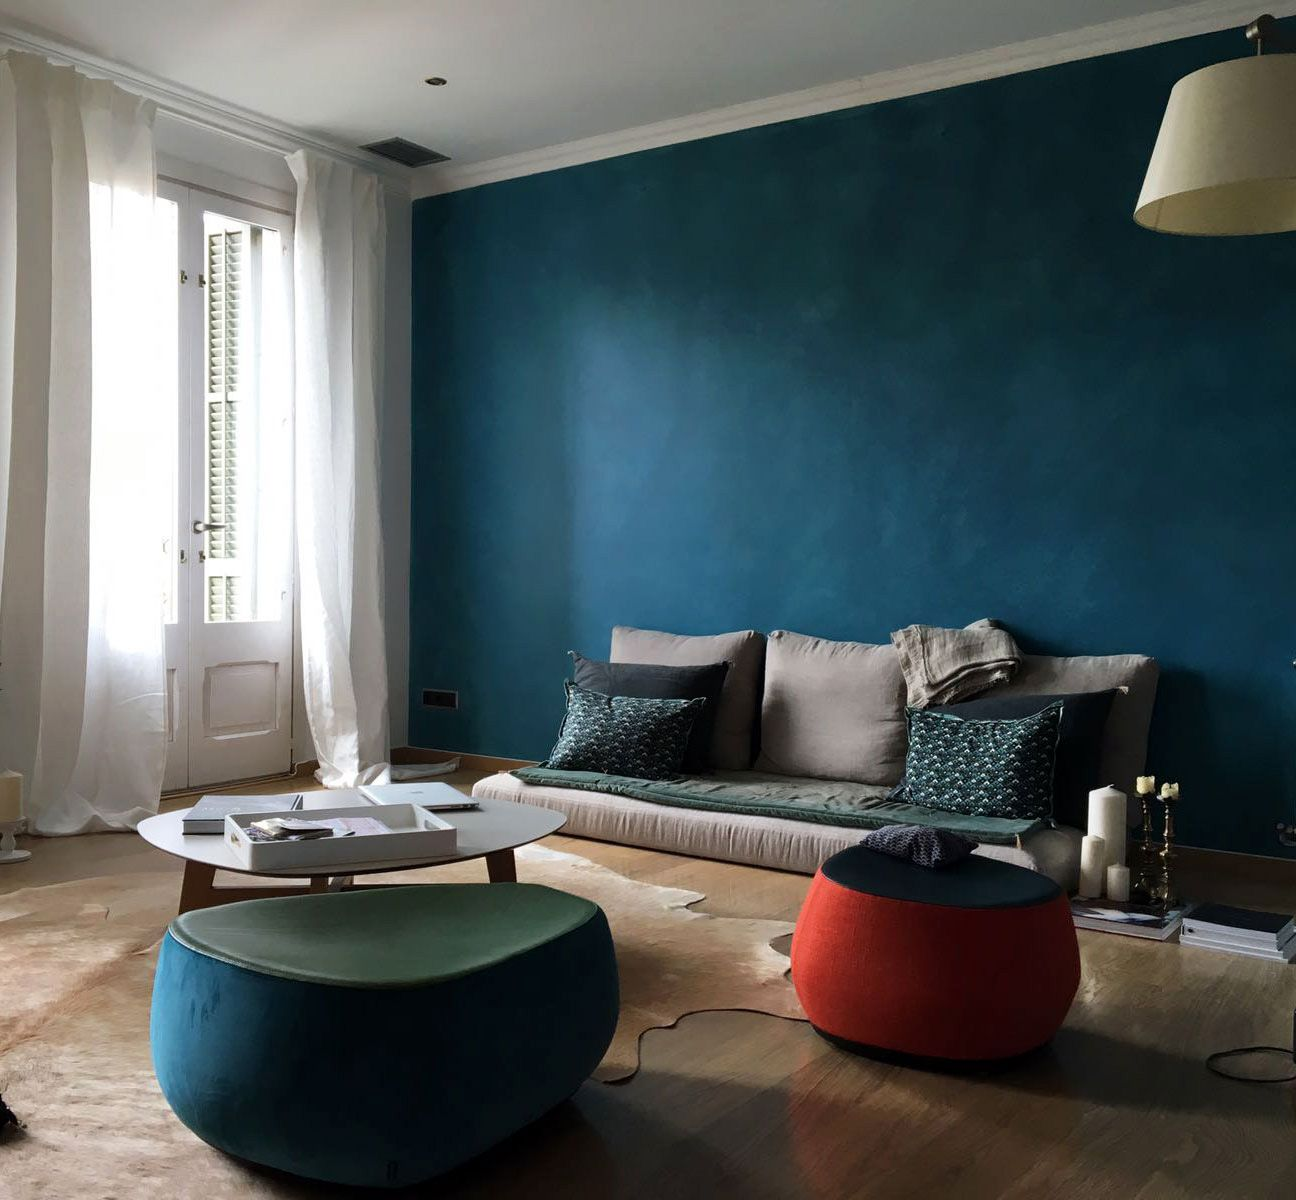 Pared Pintada Con Veladuras Color Azul Petroleo Por Stencilbarcelona Living Room Schemes Colourful